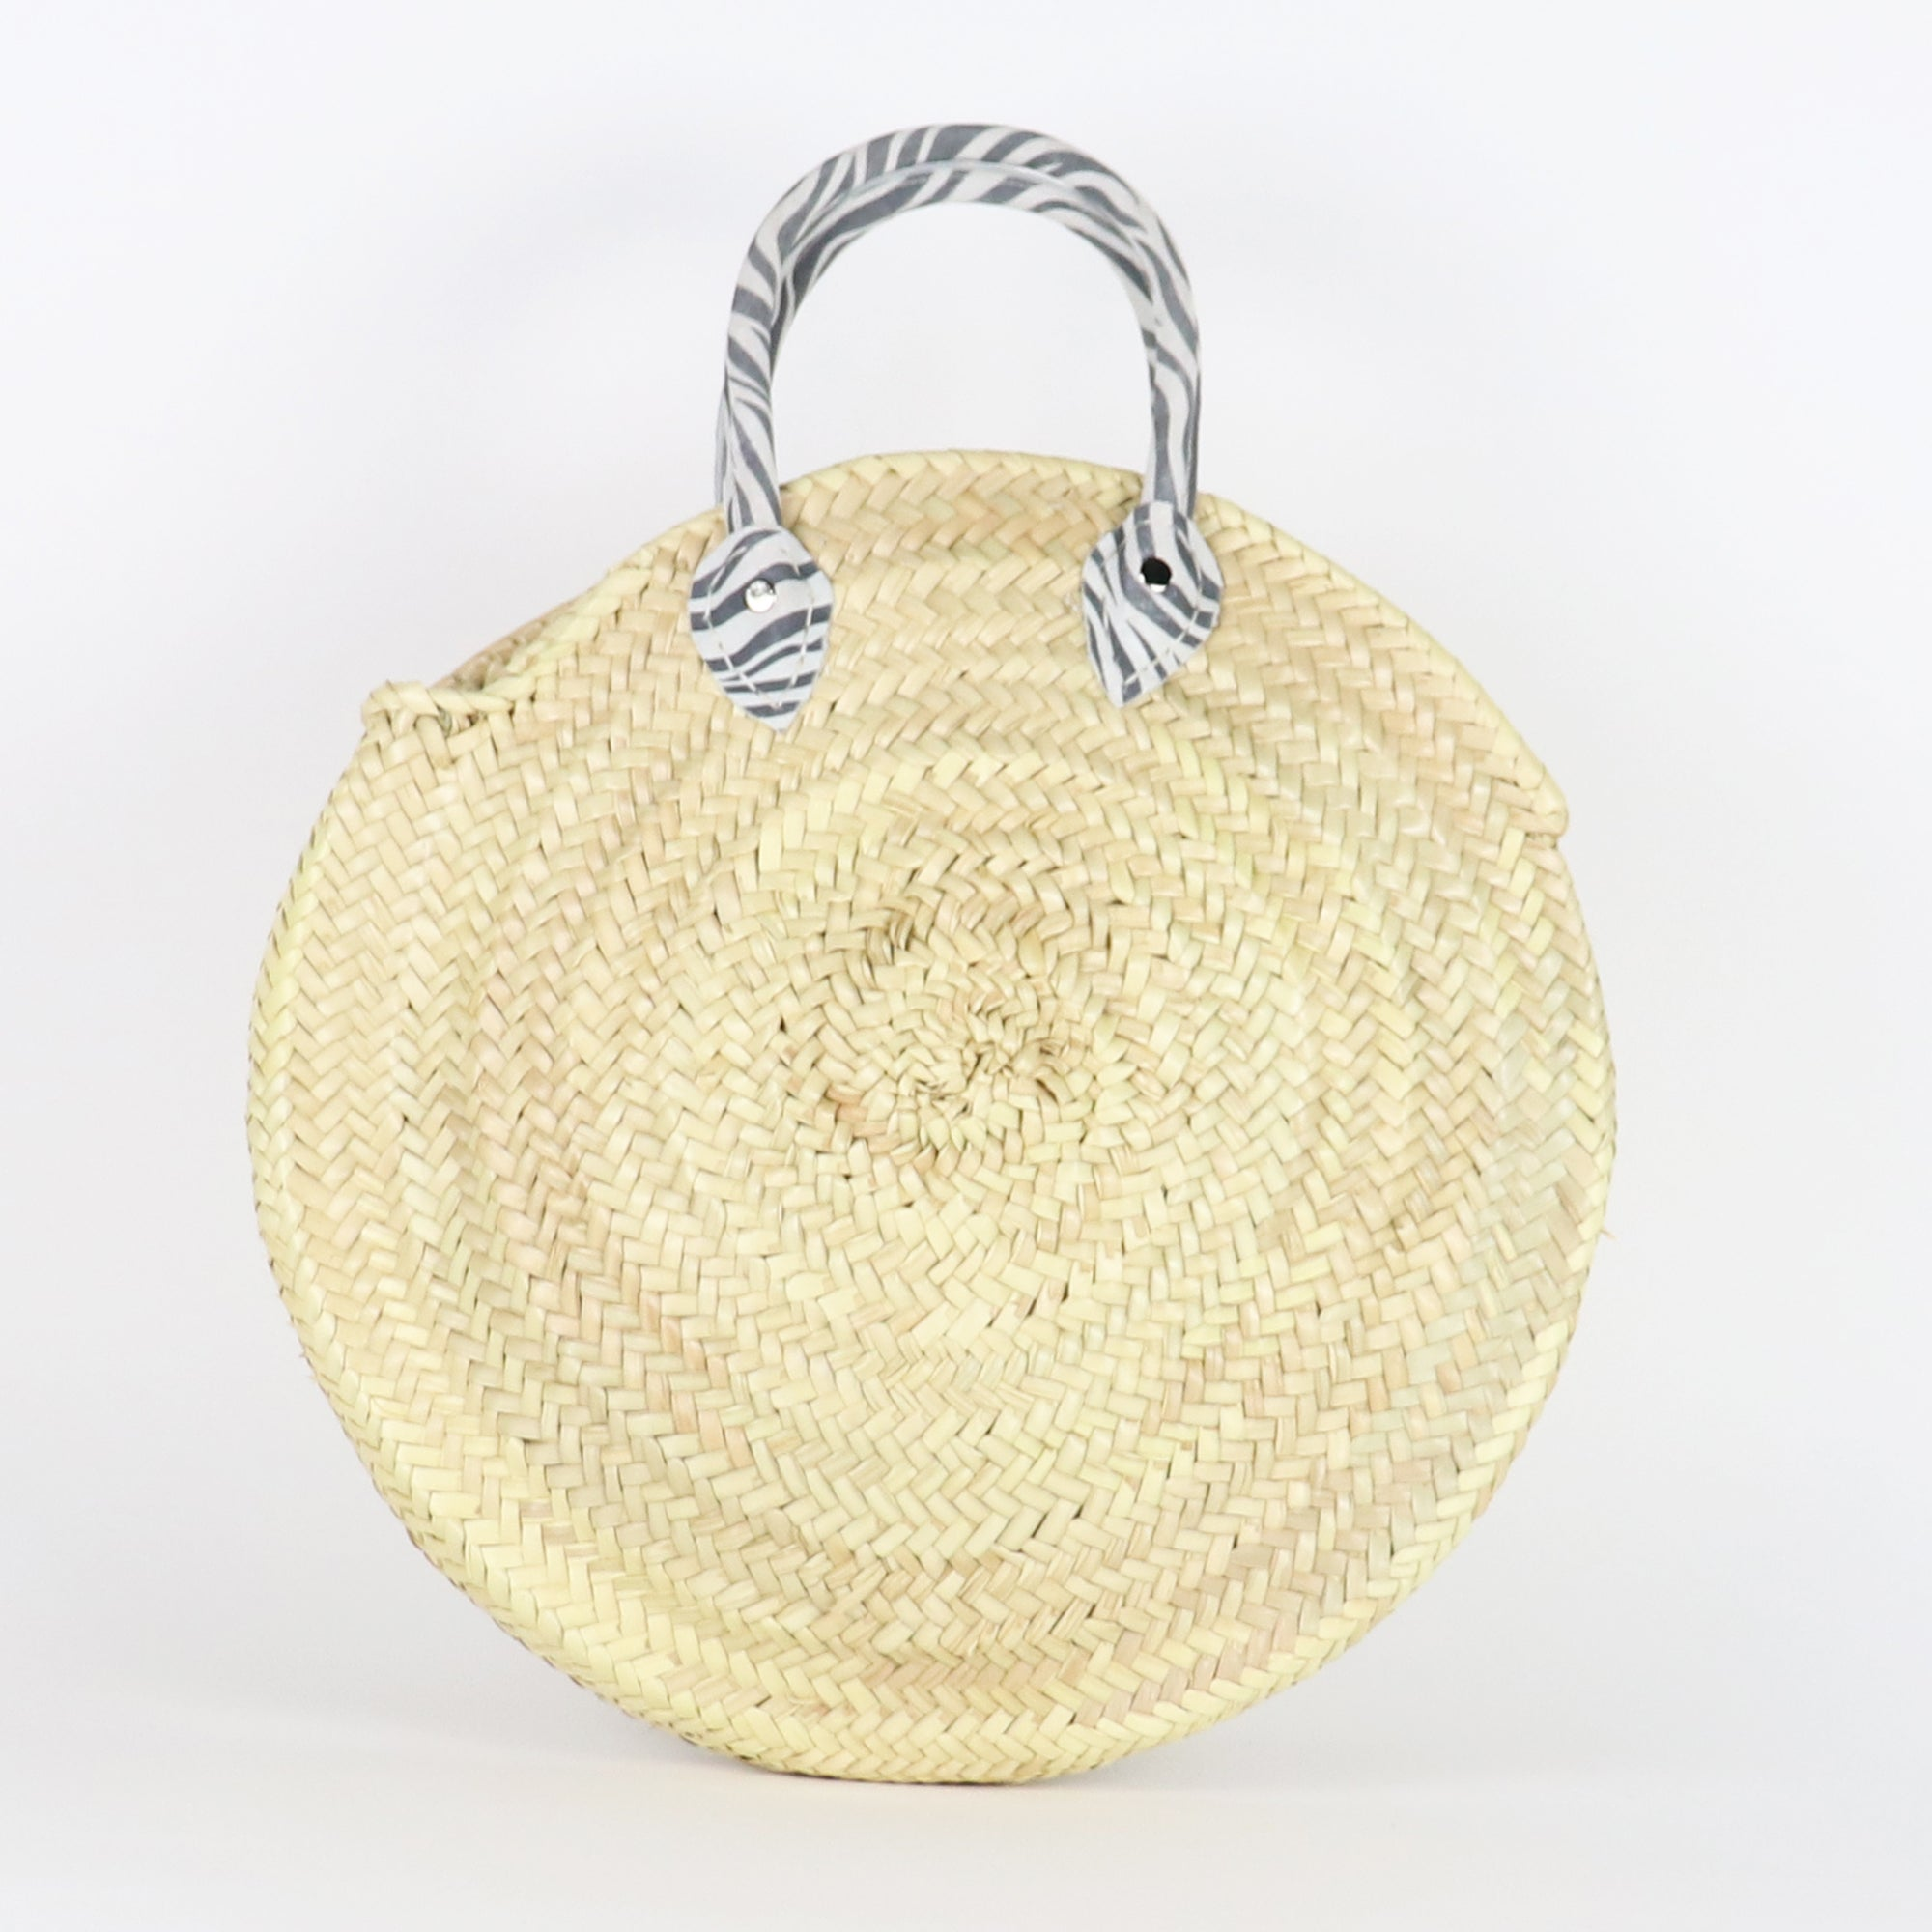 Zebra round straw bag, French Basket, Beach, Farmers market, Sustainable bag, Classic, Basic